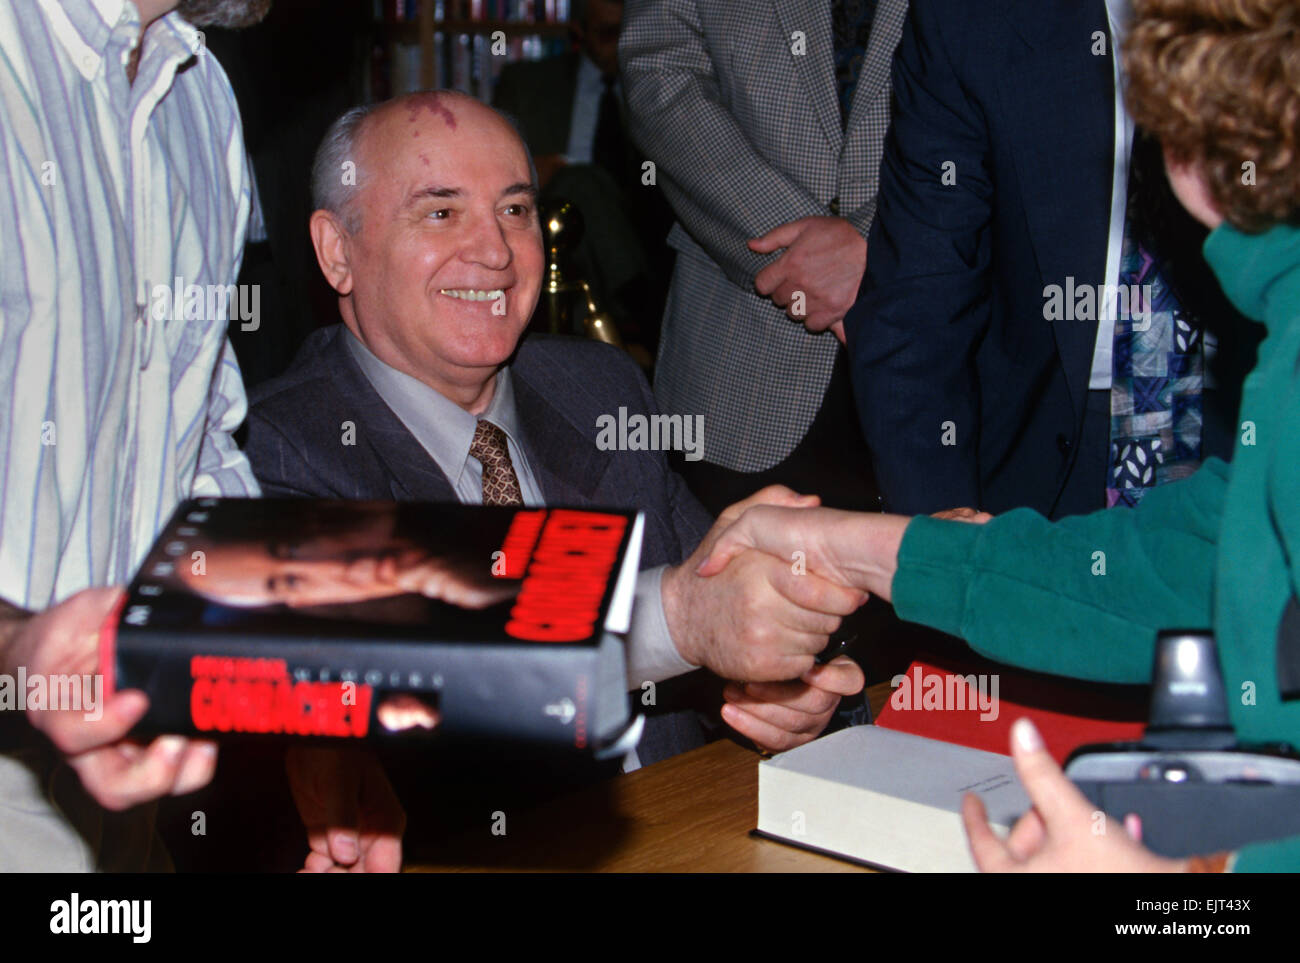 Former Soviet leader Mikhail Gorbachev signs copies of his book at Politics and Prose bookstore October 25, 1996 - Stock Image